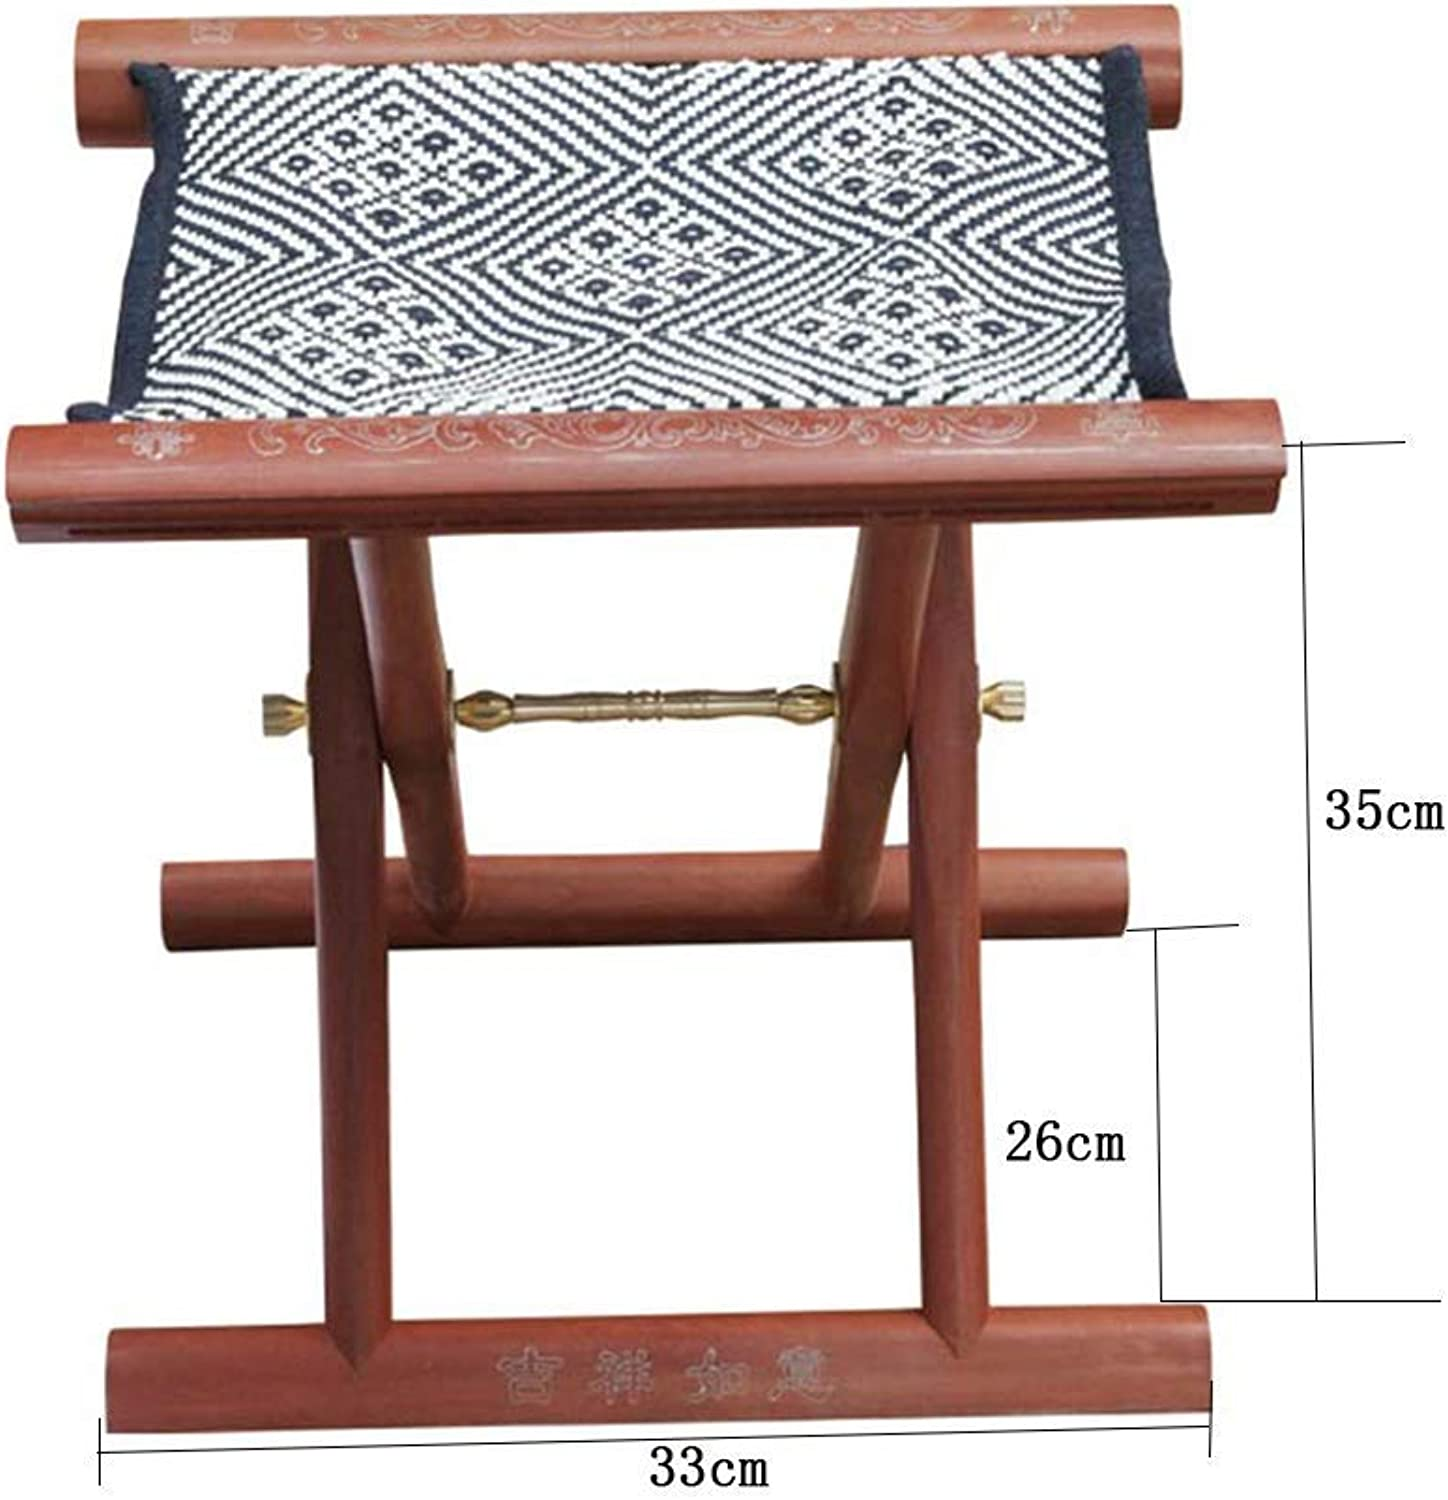 JZX Multifunctional Pony Foldable Creative Solid Wood Fishing Stool, Home Chair, Multi-Function Household Stool